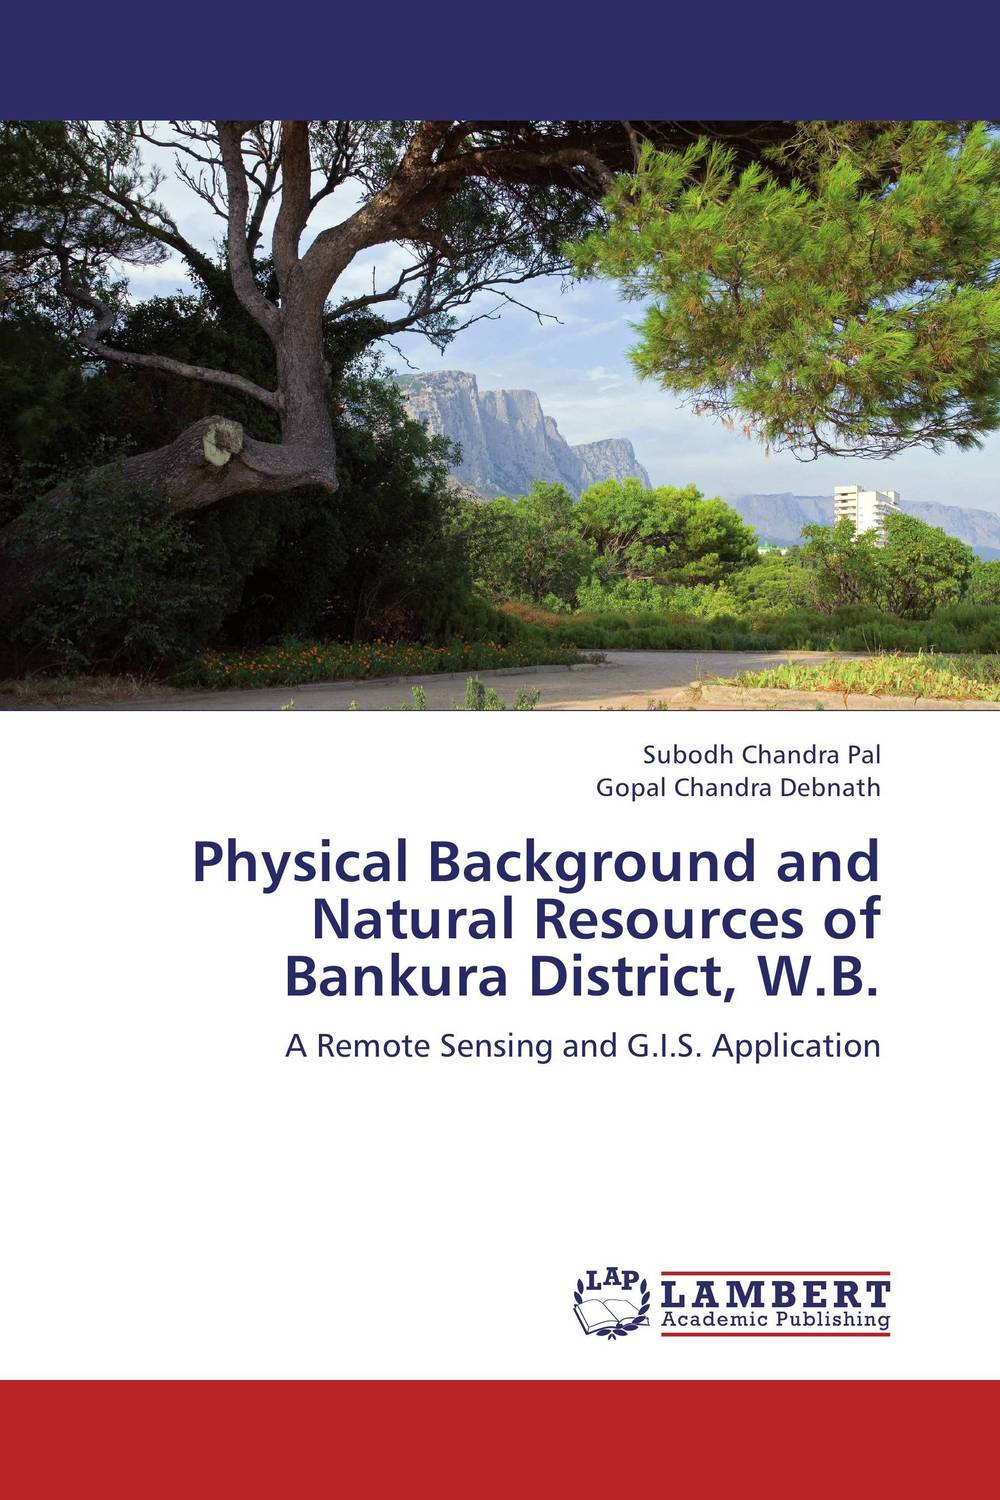 Physical Background and Natural Resources of Bankura District, W.B. an epidemiological study of natural deaths in limpopo